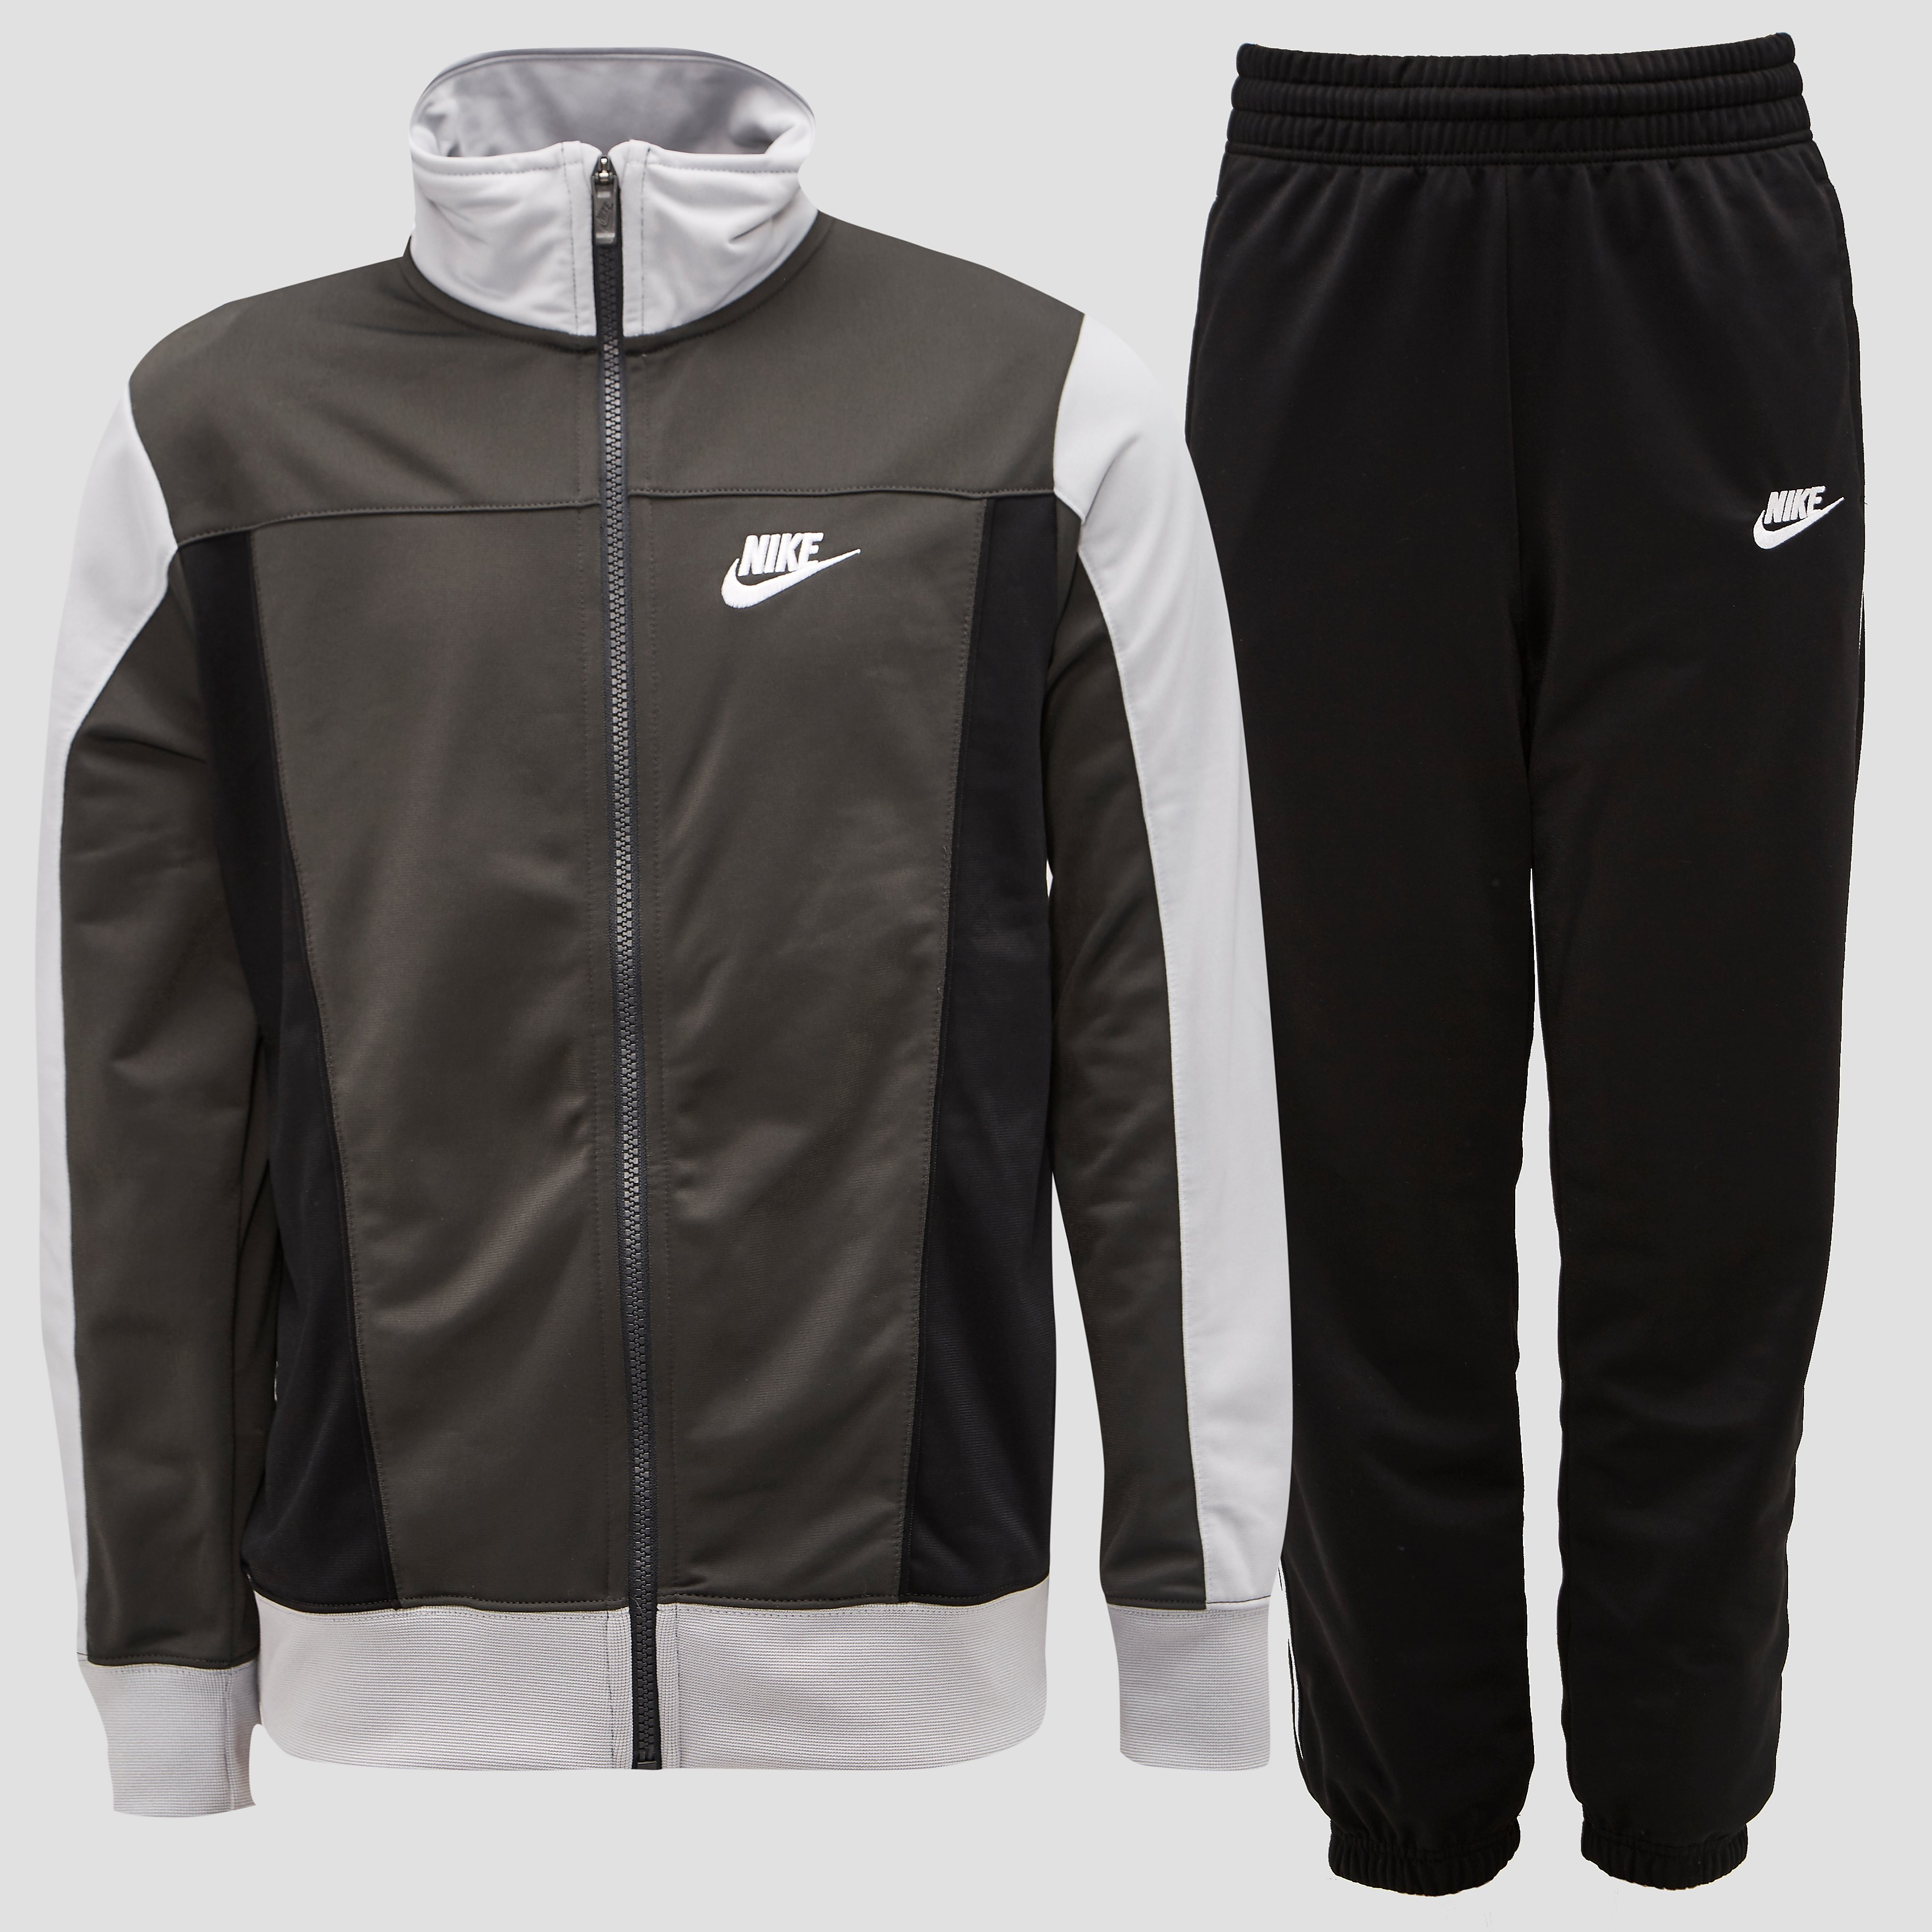 NIKE SPORTSWEAR WARM-UP TRAININGSPAK JONGENS